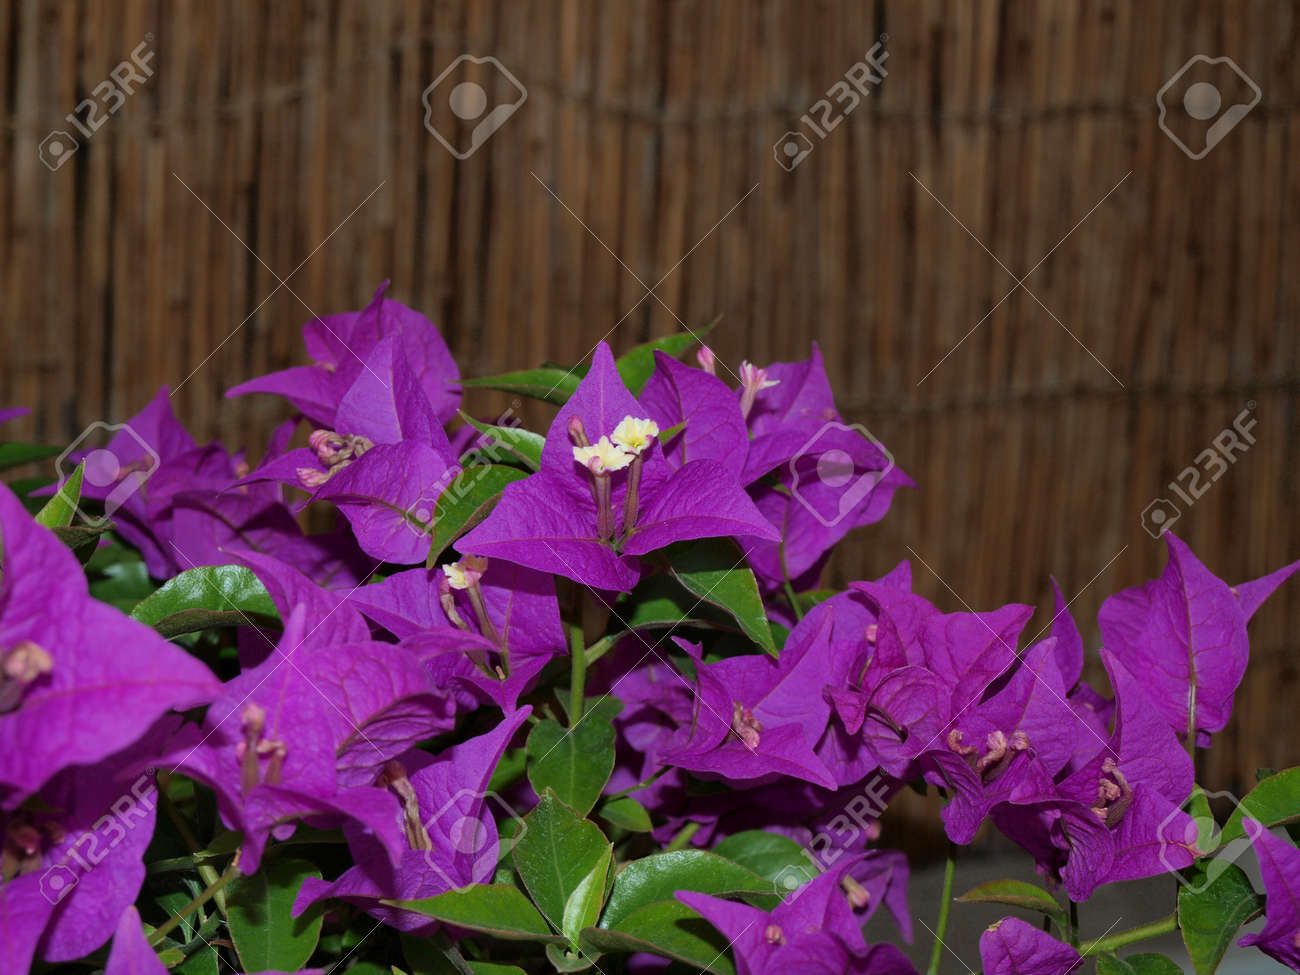 Small Yellow Flowers Purple And Green Leaves Stock Photo Picture